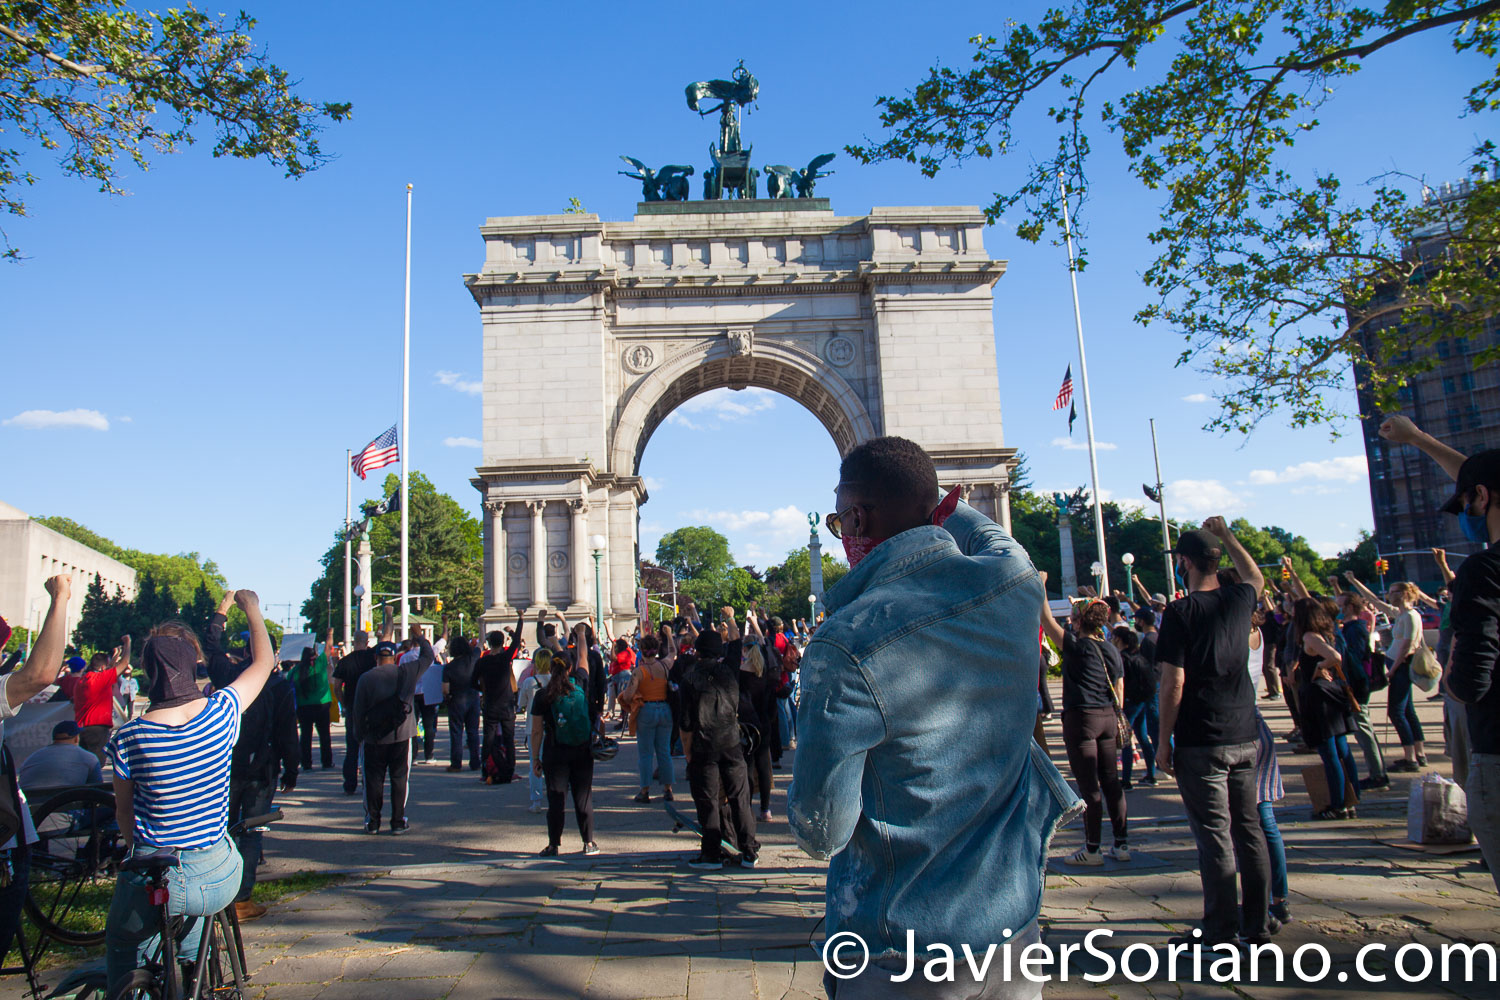 Monday, June 1, 2020. New York City - Rally at Grand Army Plaza in Brooklyn. Photo by Javier Soriano/www.JavierSoriano.com